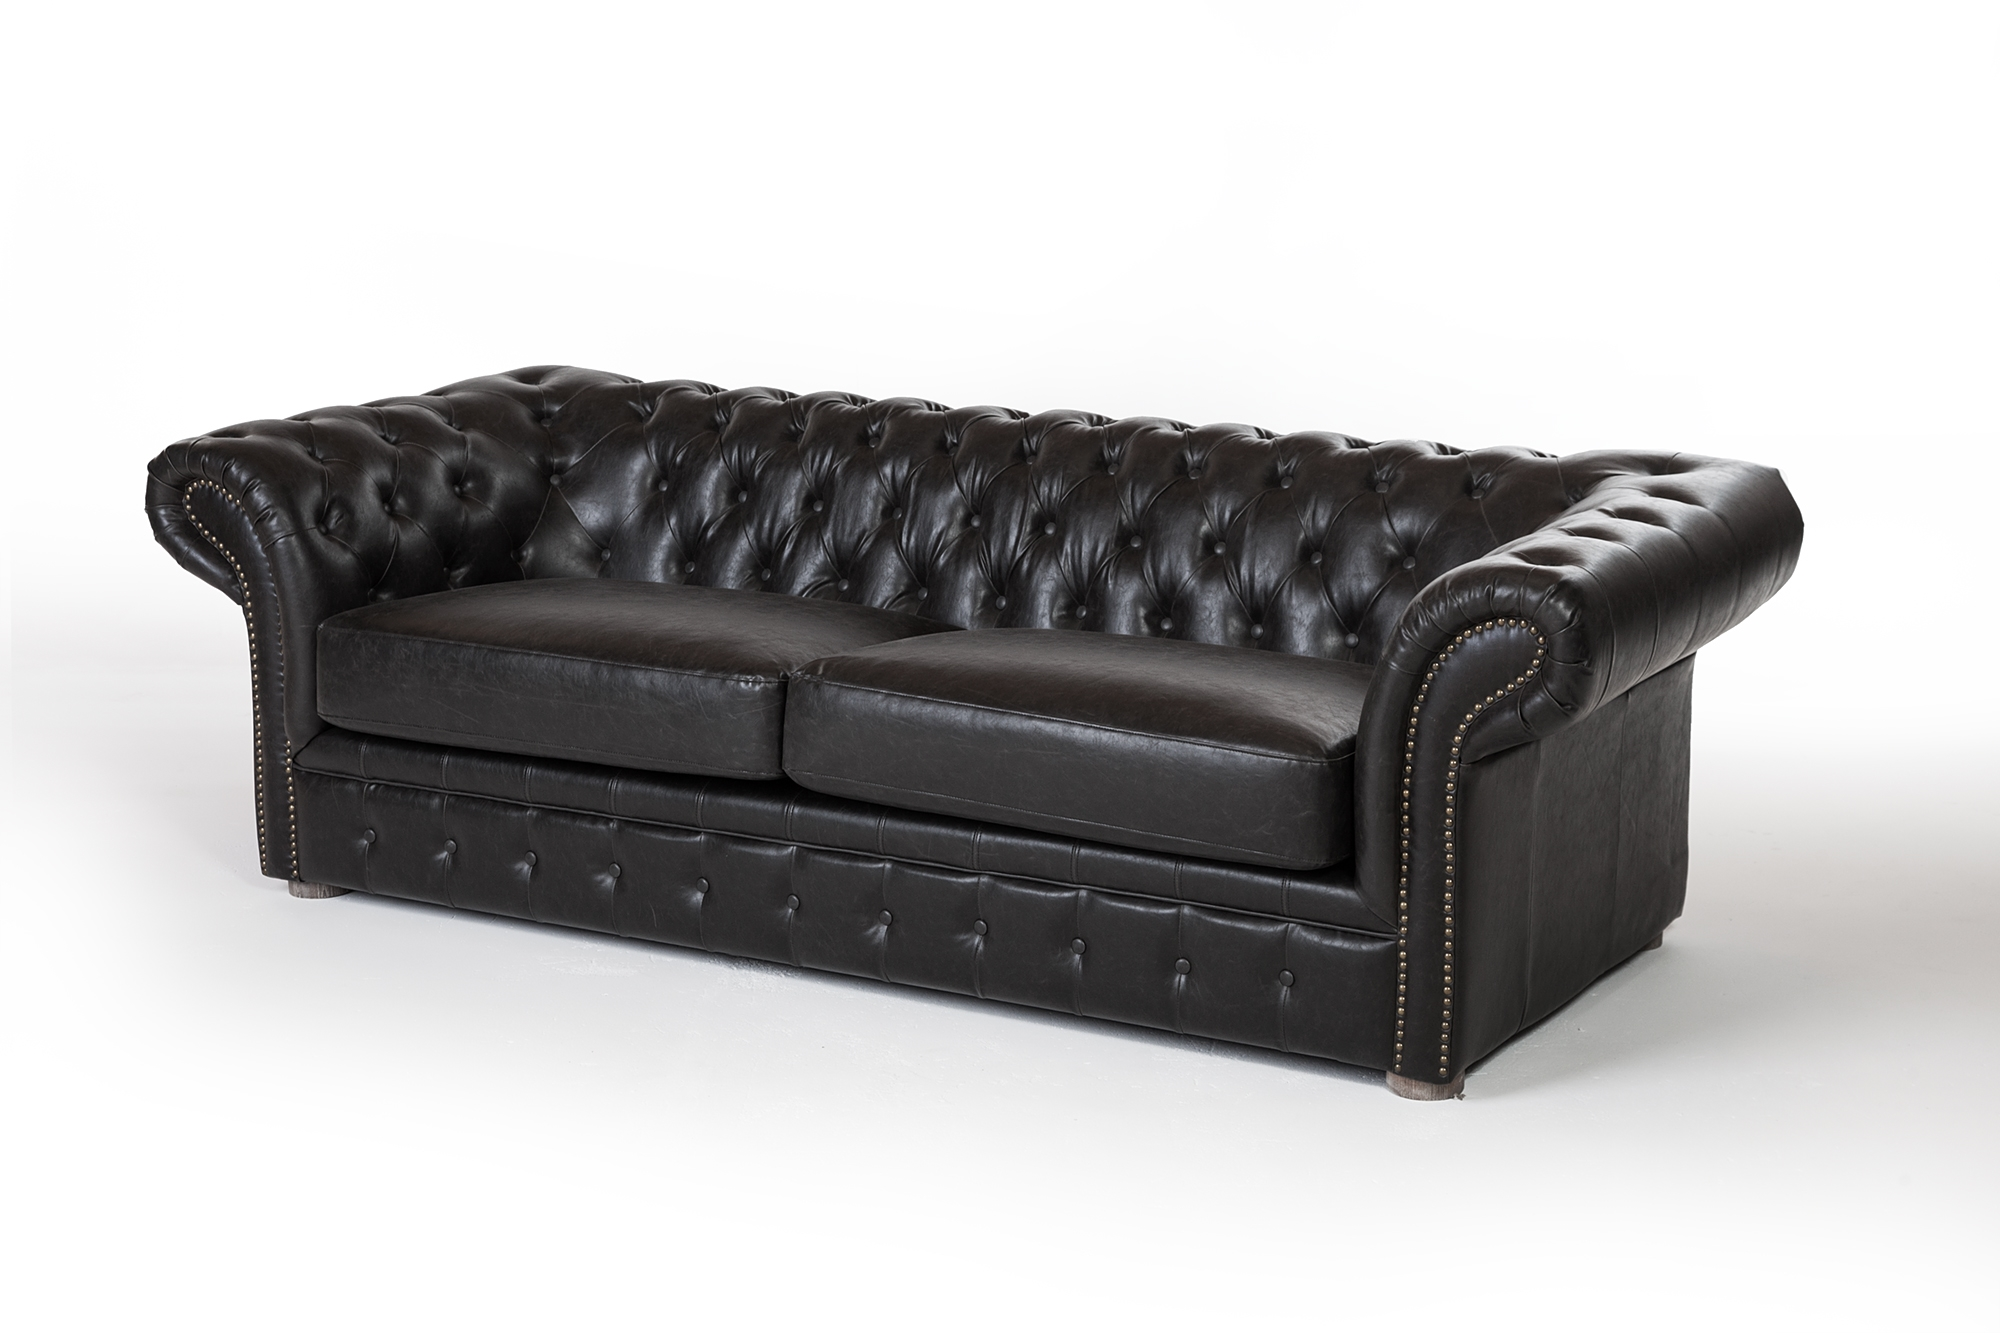 Sensational Chesterfield 91 Sofa Distressed Black Leather Caraccident5 Cool Chair Designs And Ideas Caraccident5Info